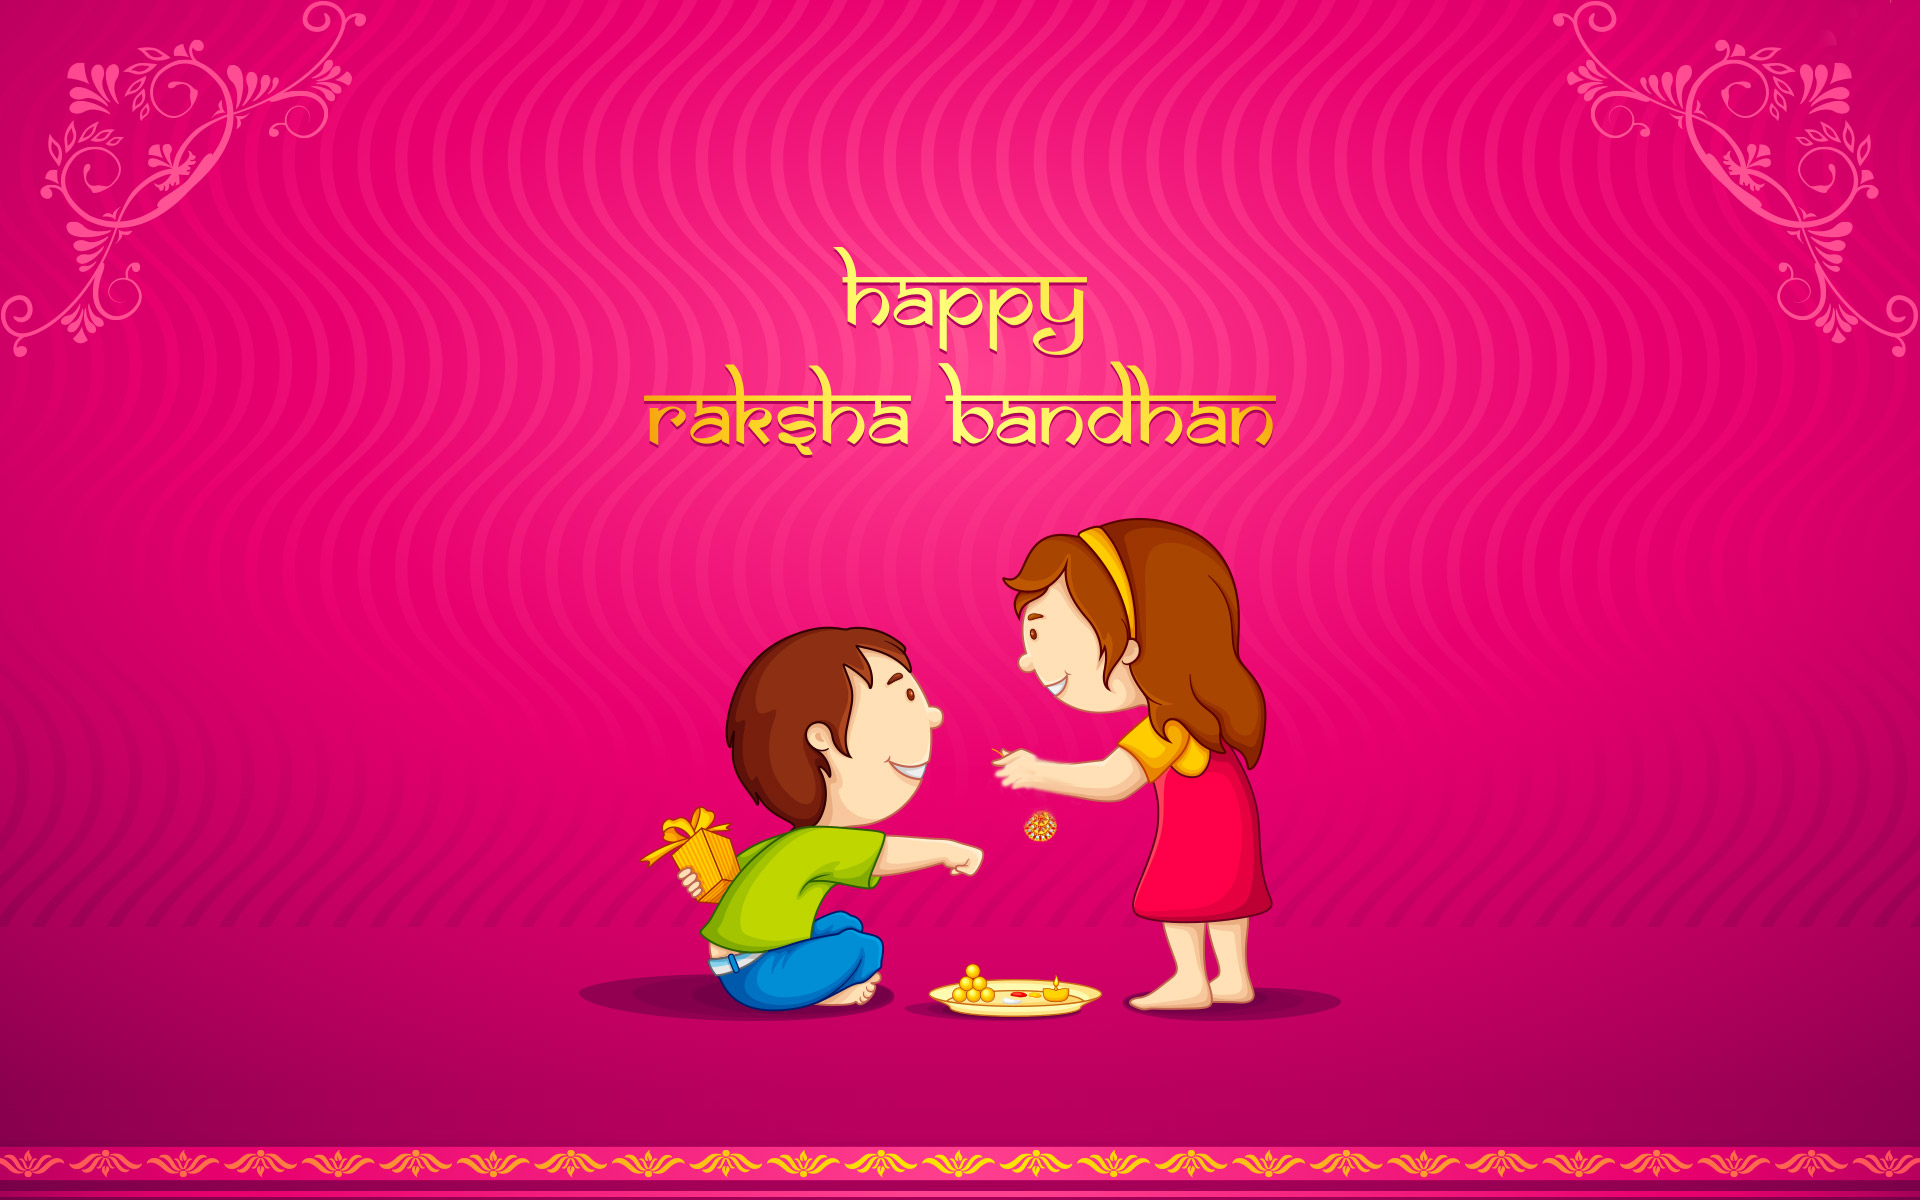 cute_happy_raksha_bandhan_wallpaper-2015